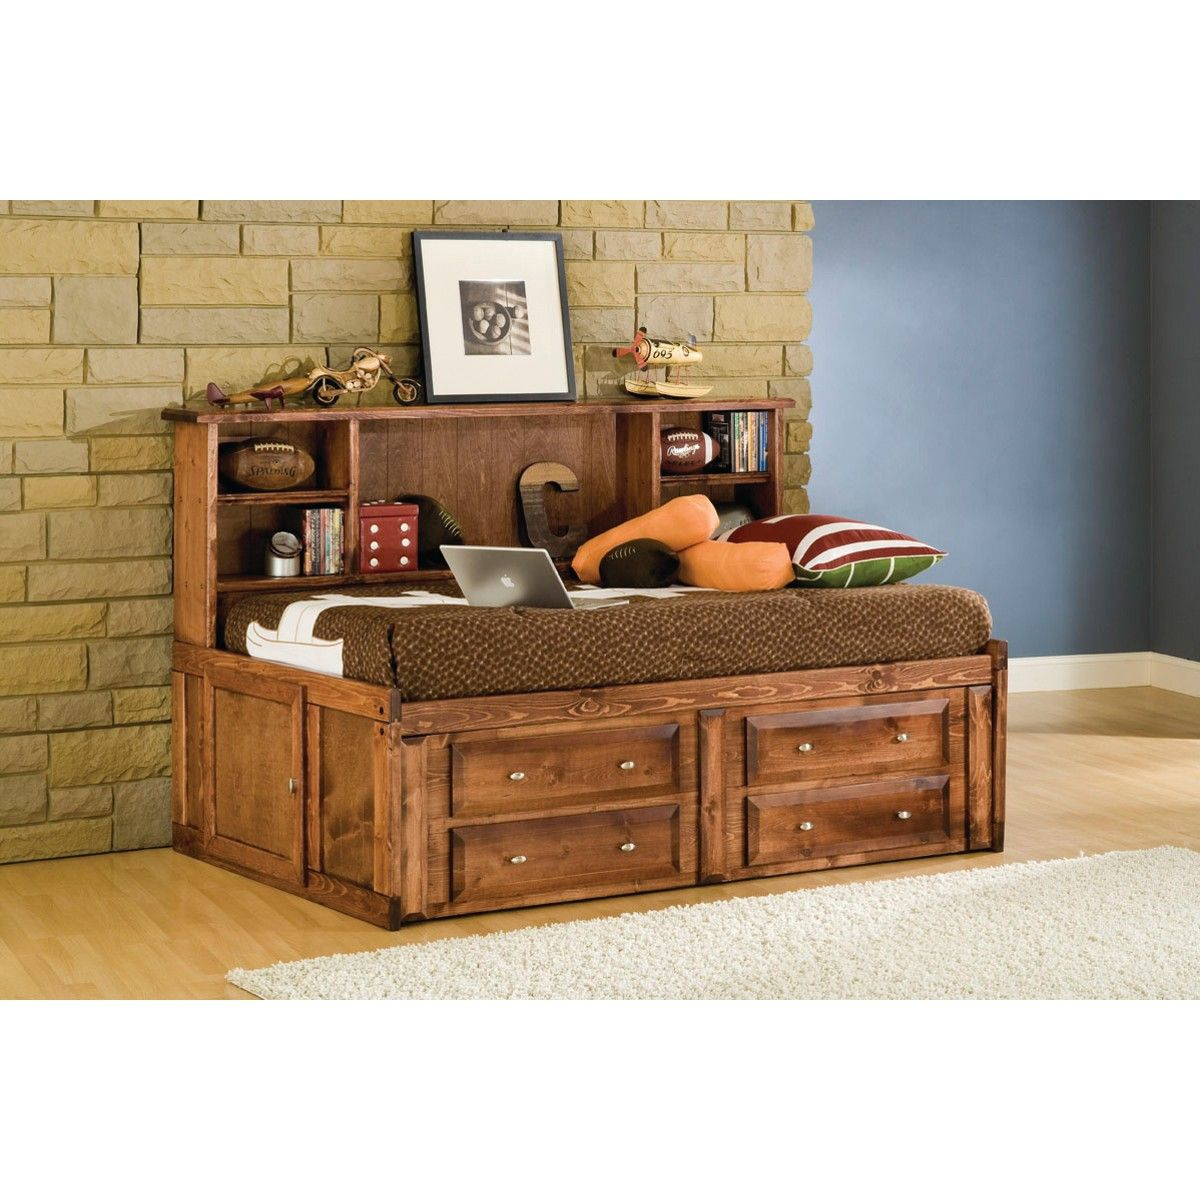 visions studio bedroom - bed & underdresser - twin - cocoa (4315